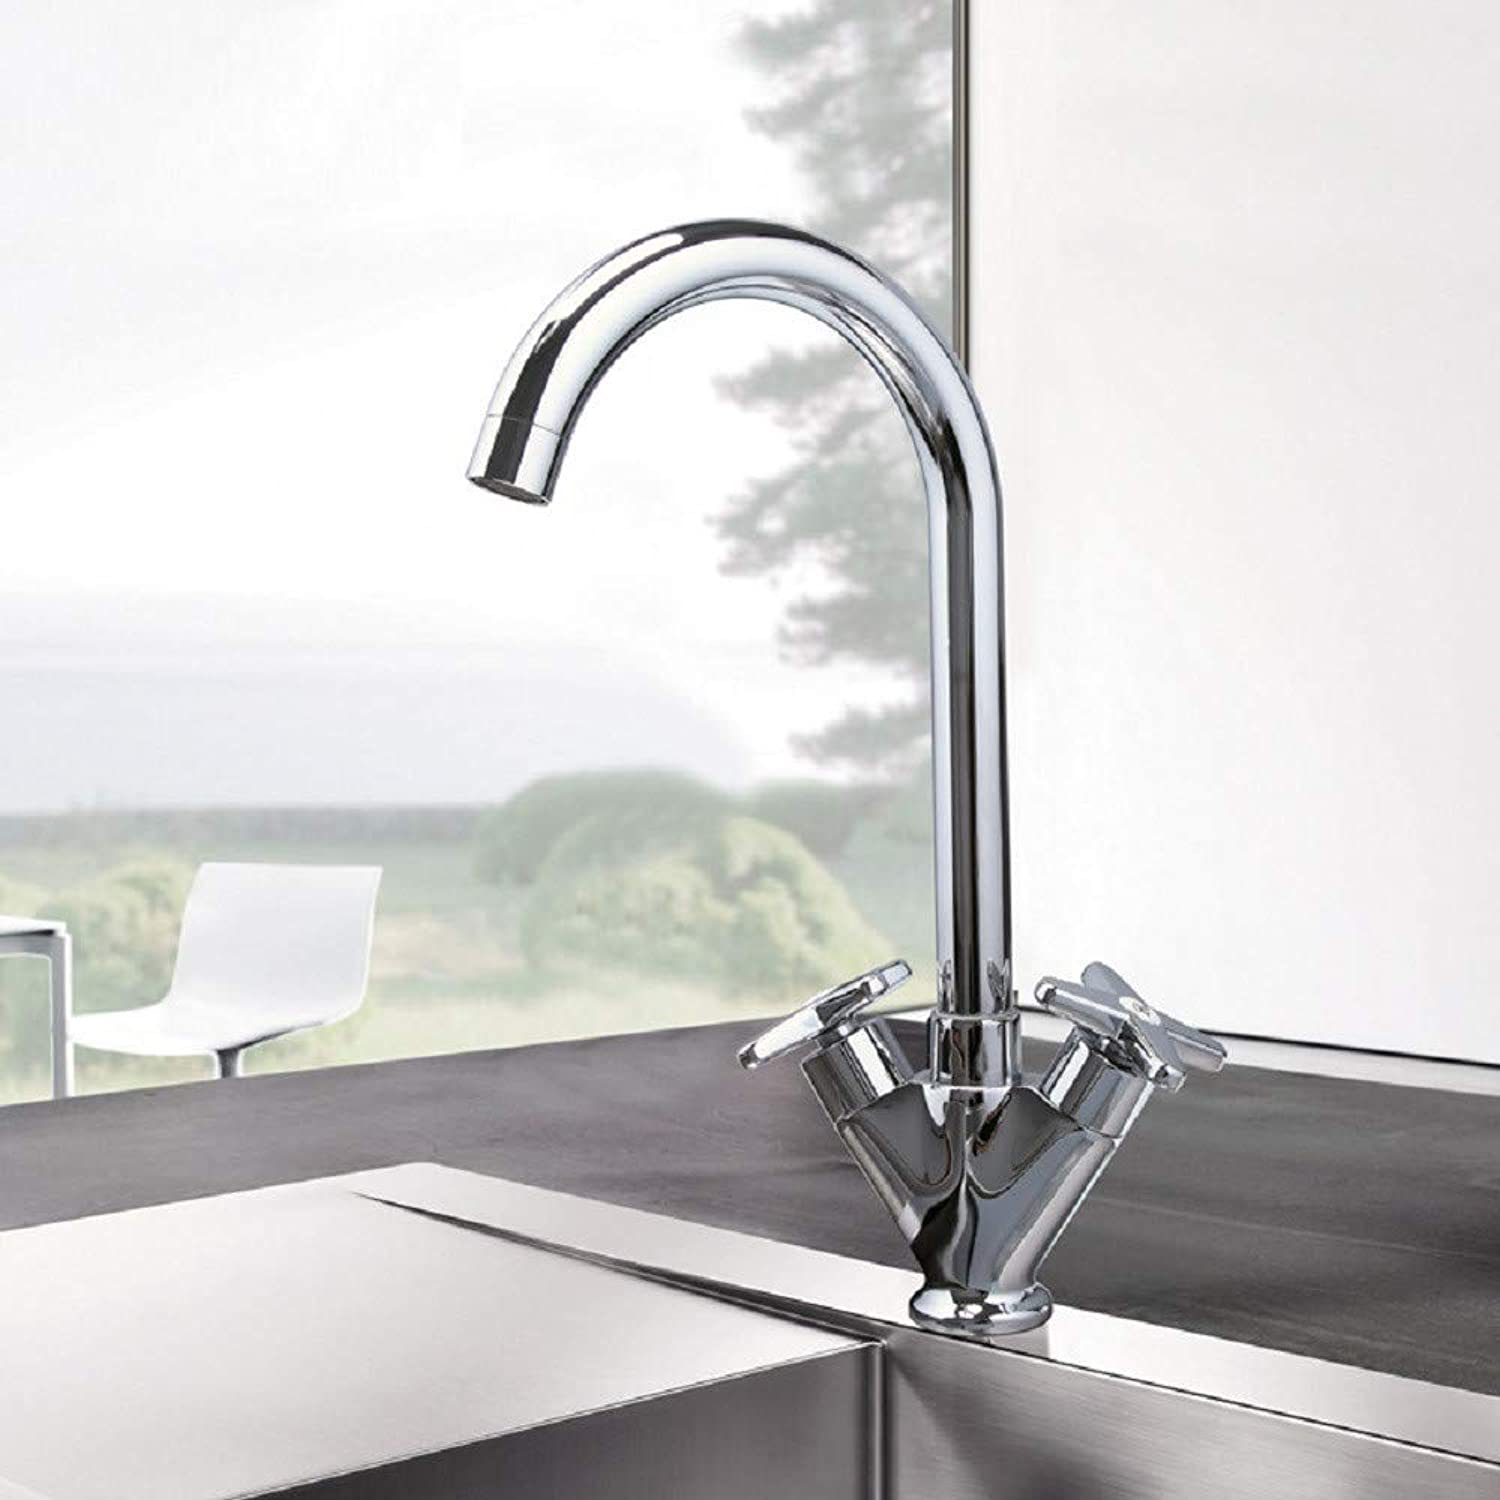 Kitchen Taps, Hot and Cold, Double Kitchen Faucets, Double Single-Hole Sink Faucets Kitchen Taps Kitchen Sink Mixer Taps Basin Tap